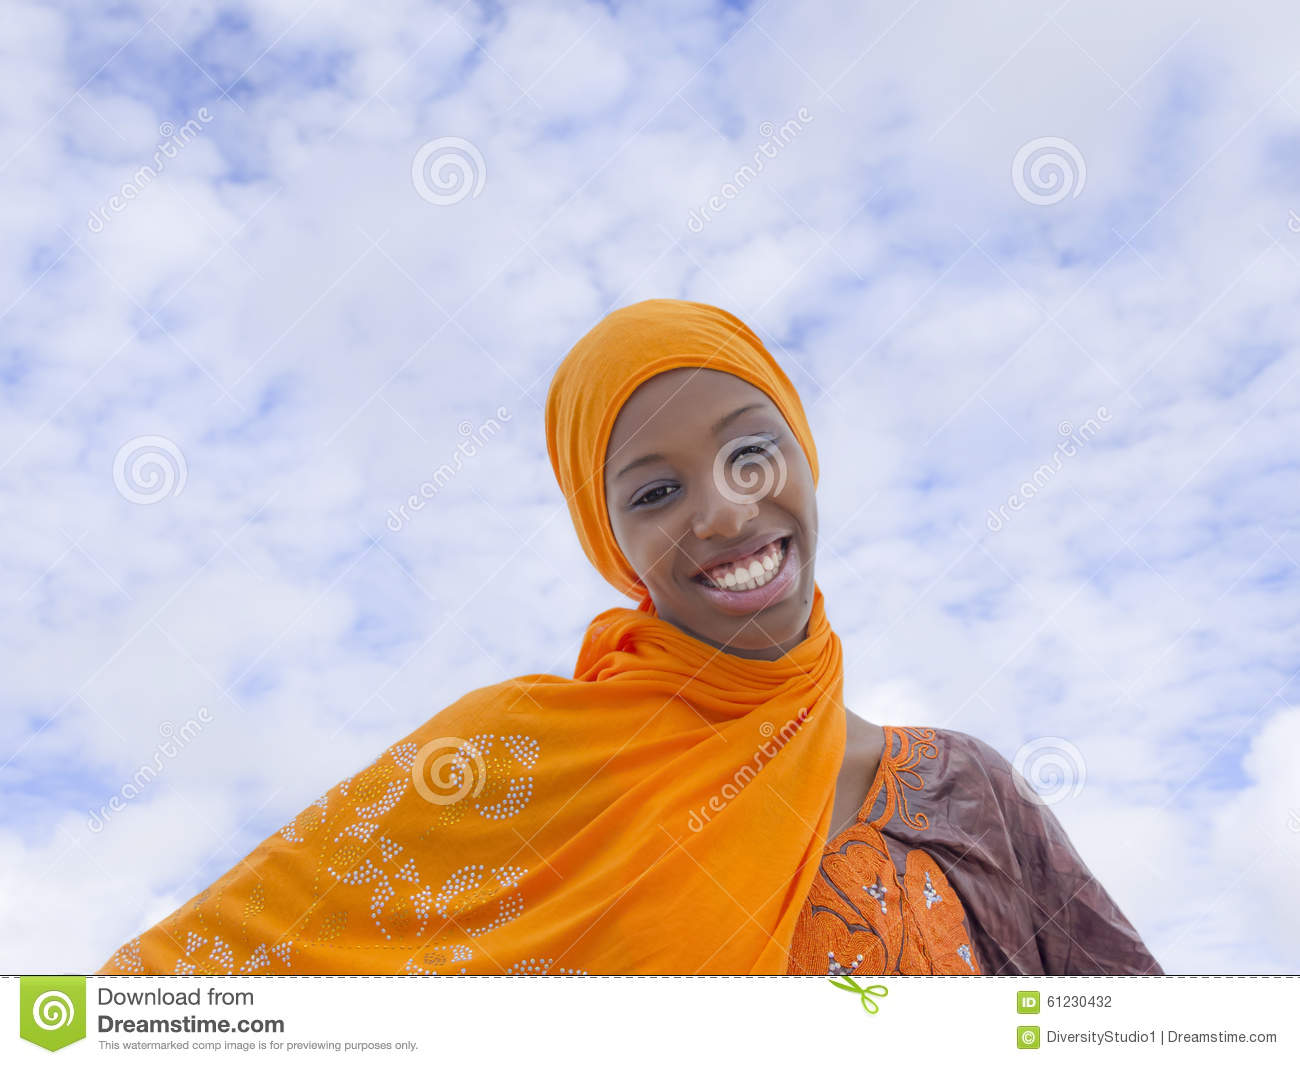 Young Afro beauty wearing a traditional headscarf in the street